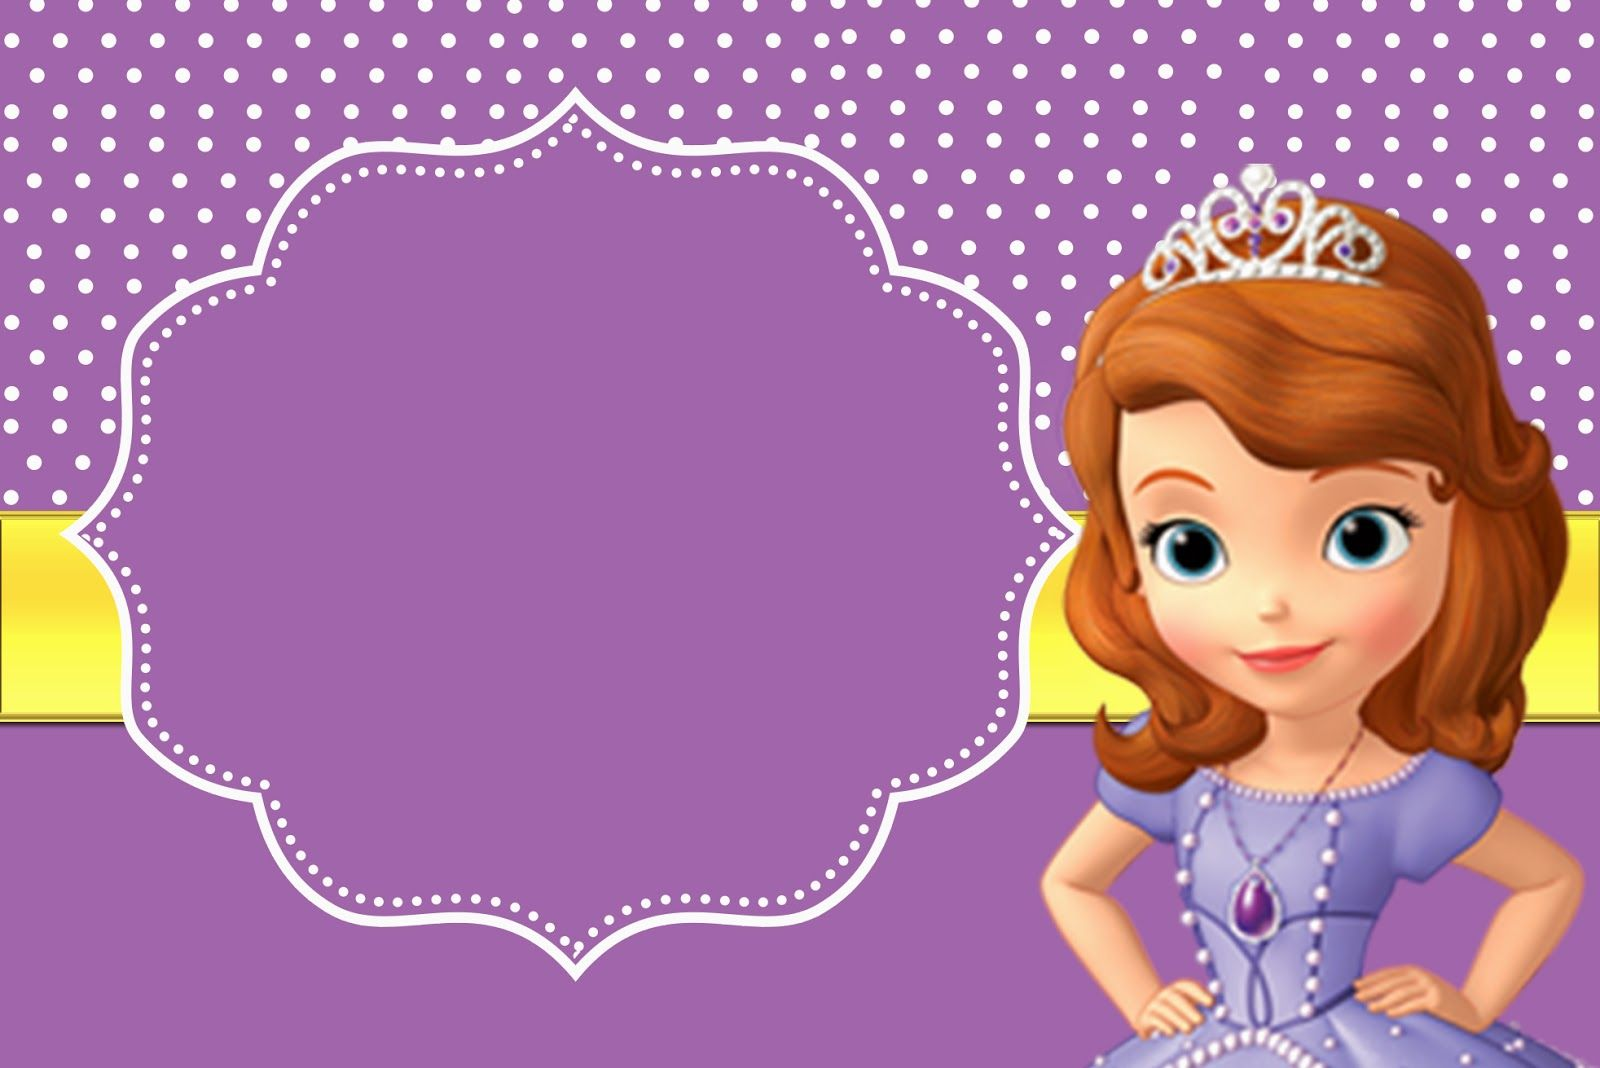 Sofia the First Free Printable Invitations sofia the first bday